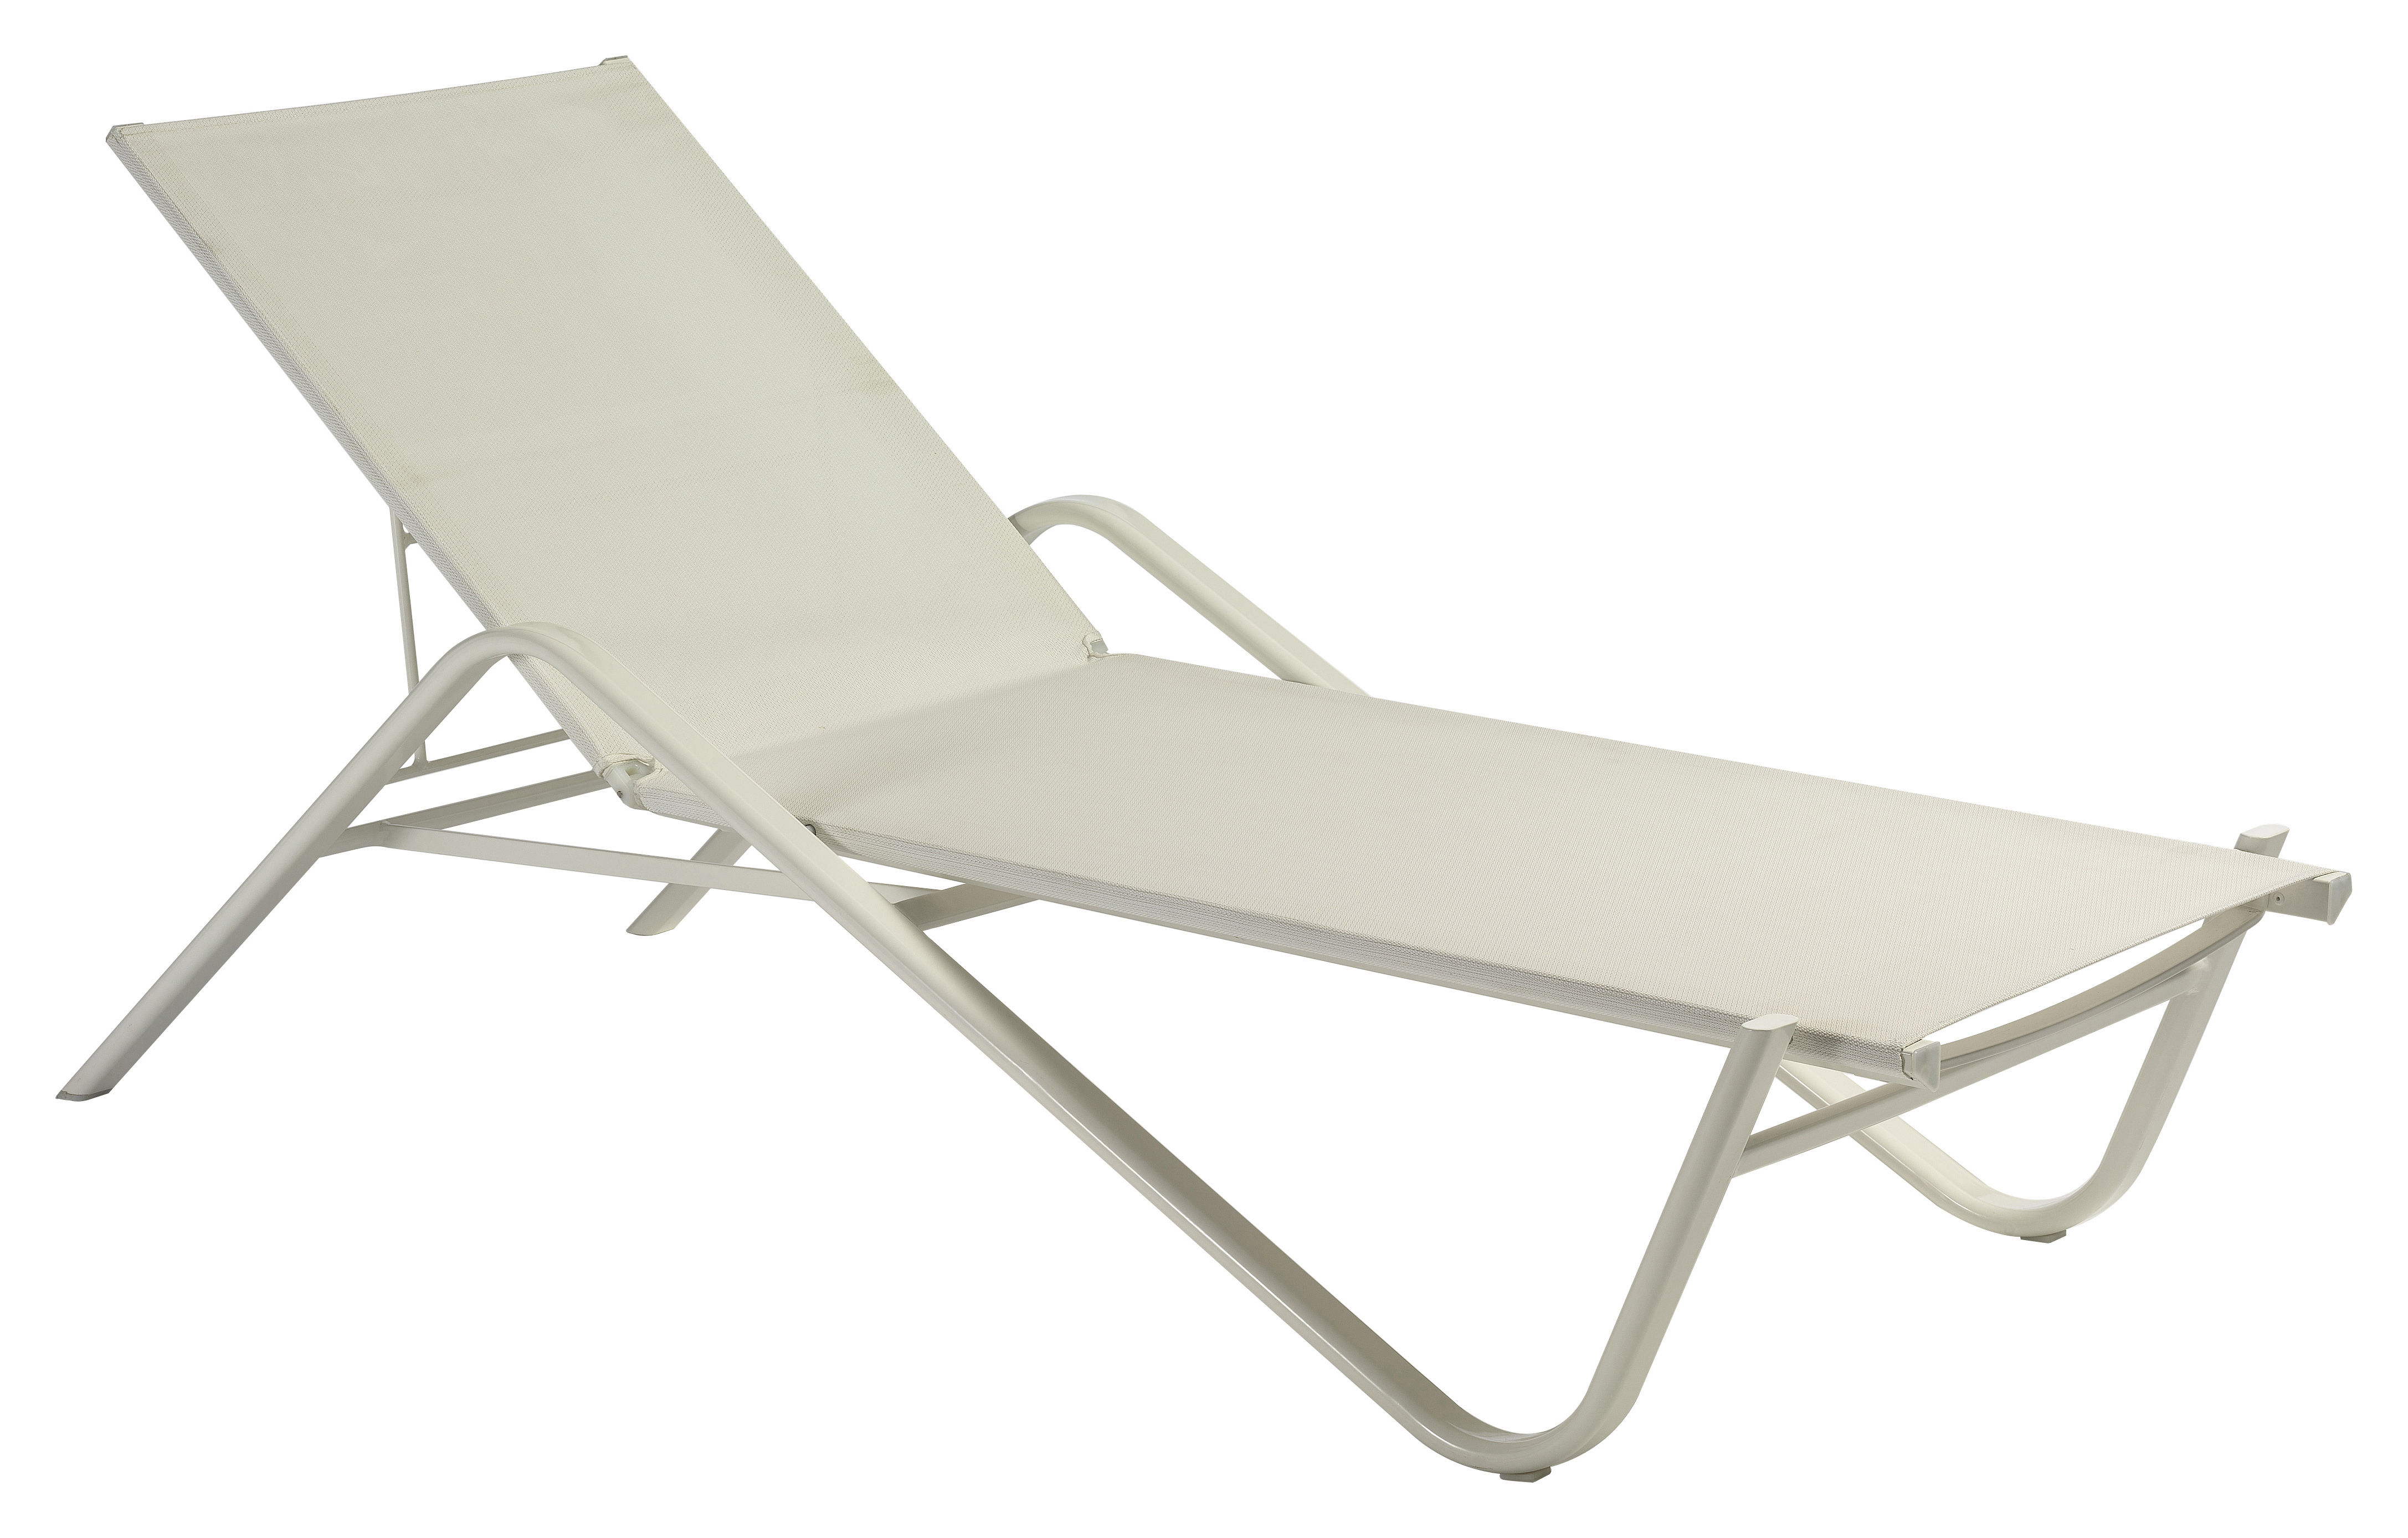 Outdoor - Sun Loungers & Hammocks - Holly Sun lounger - Stackable sun-lounger by Emu - White-White - Aluminium, Cloth